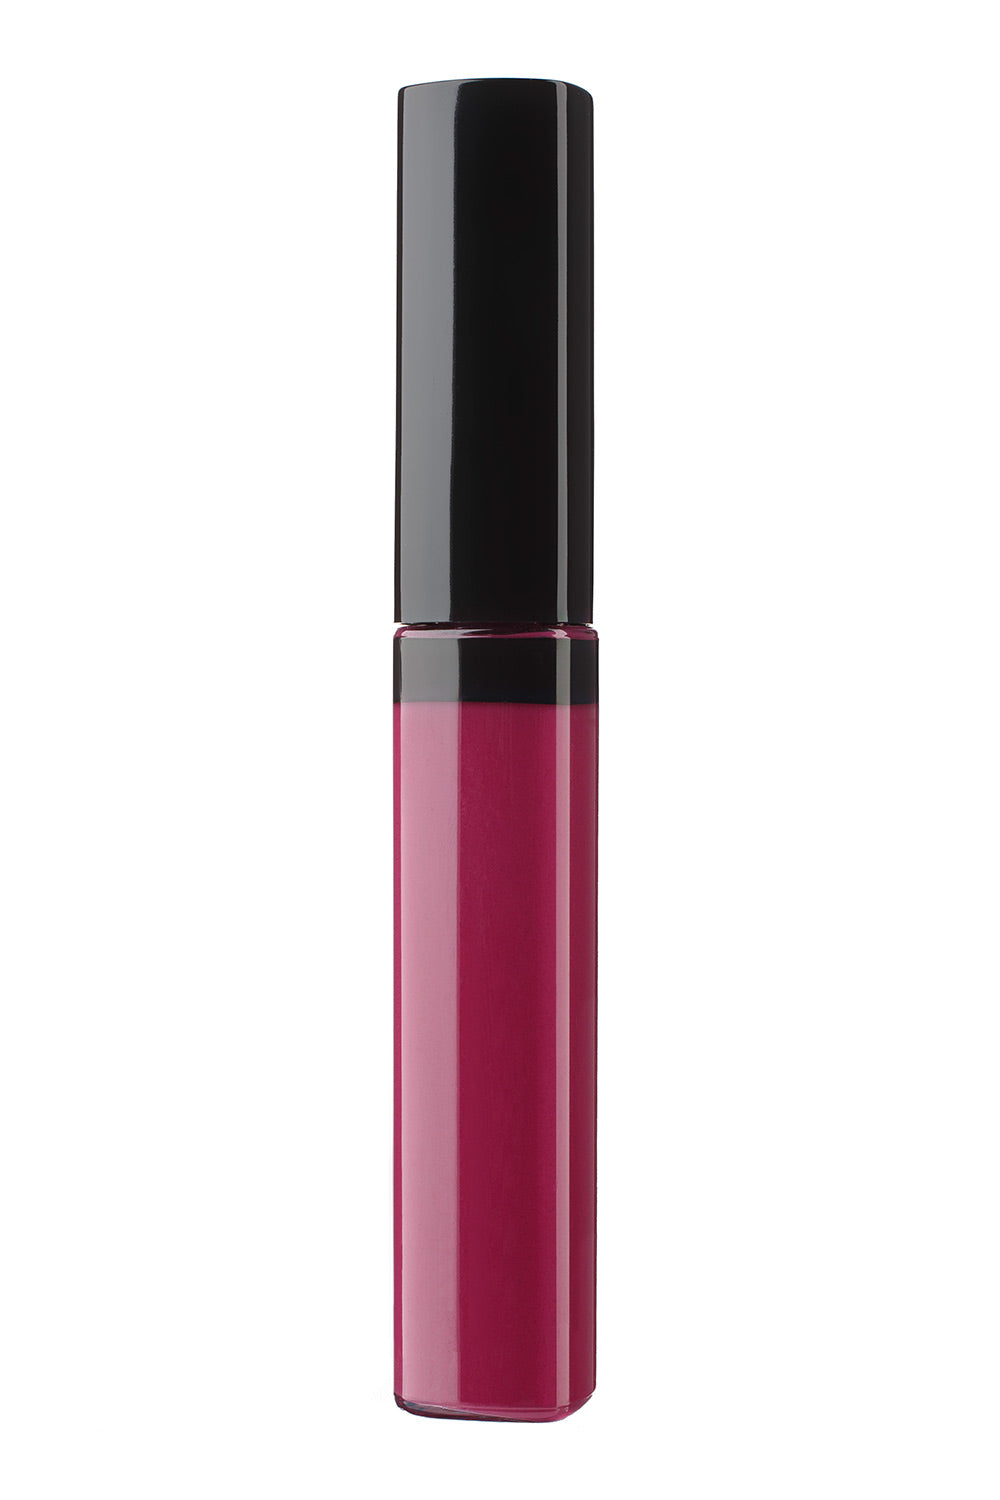 Type 2 Lip Gloss - Grapevine